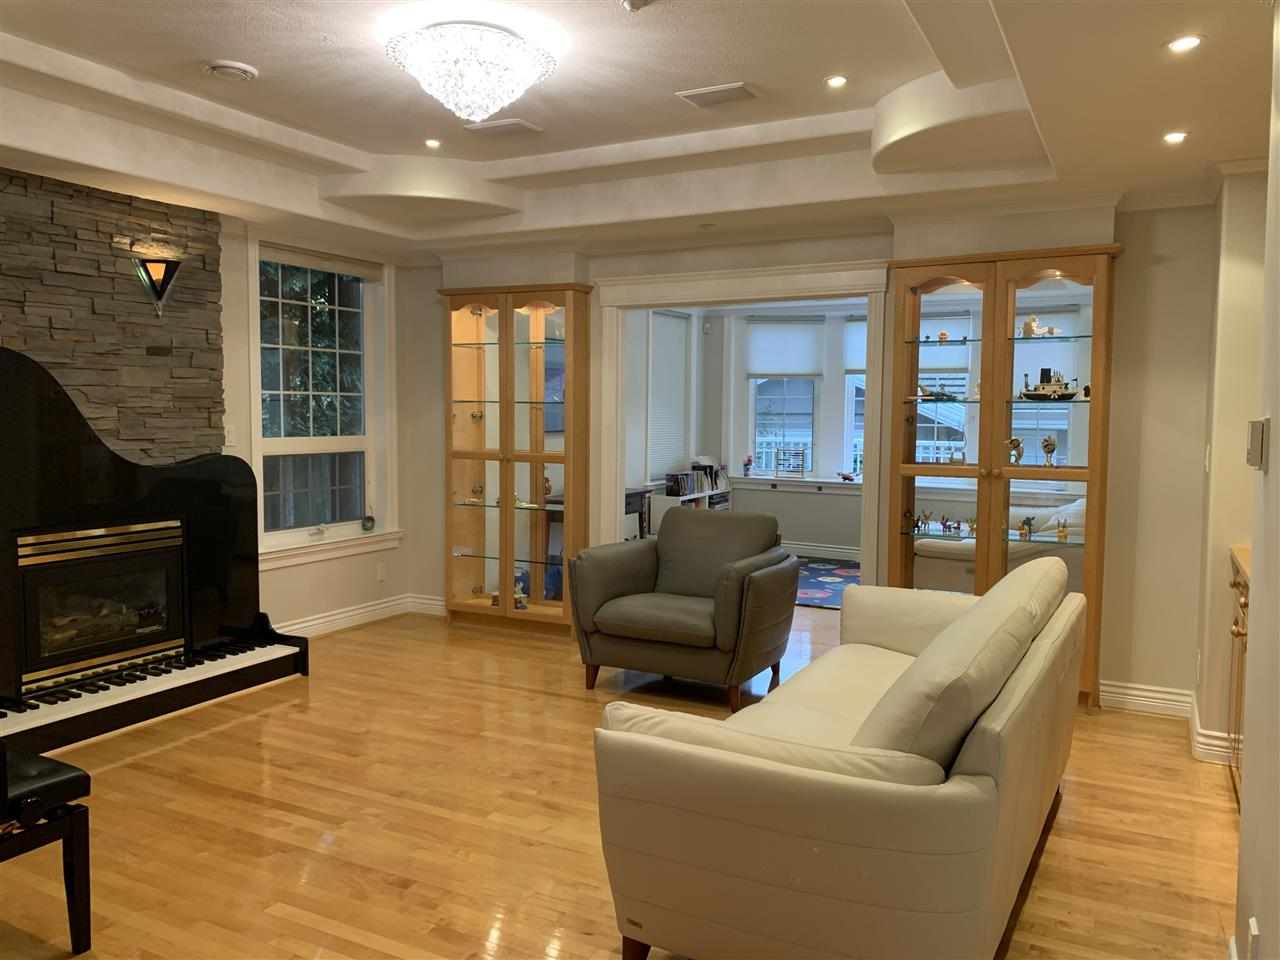 1292 W 40TH AVENUE - Shaughnessy House/Single Family for sale, 7 Bedrooms (R2527564) - #6